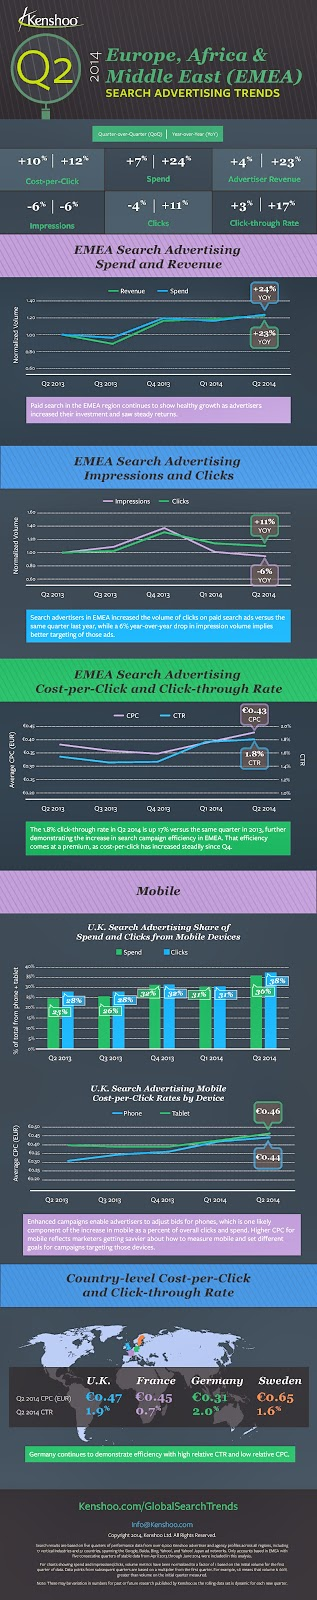 Mobile Search Ad Trends 2014 EMEA